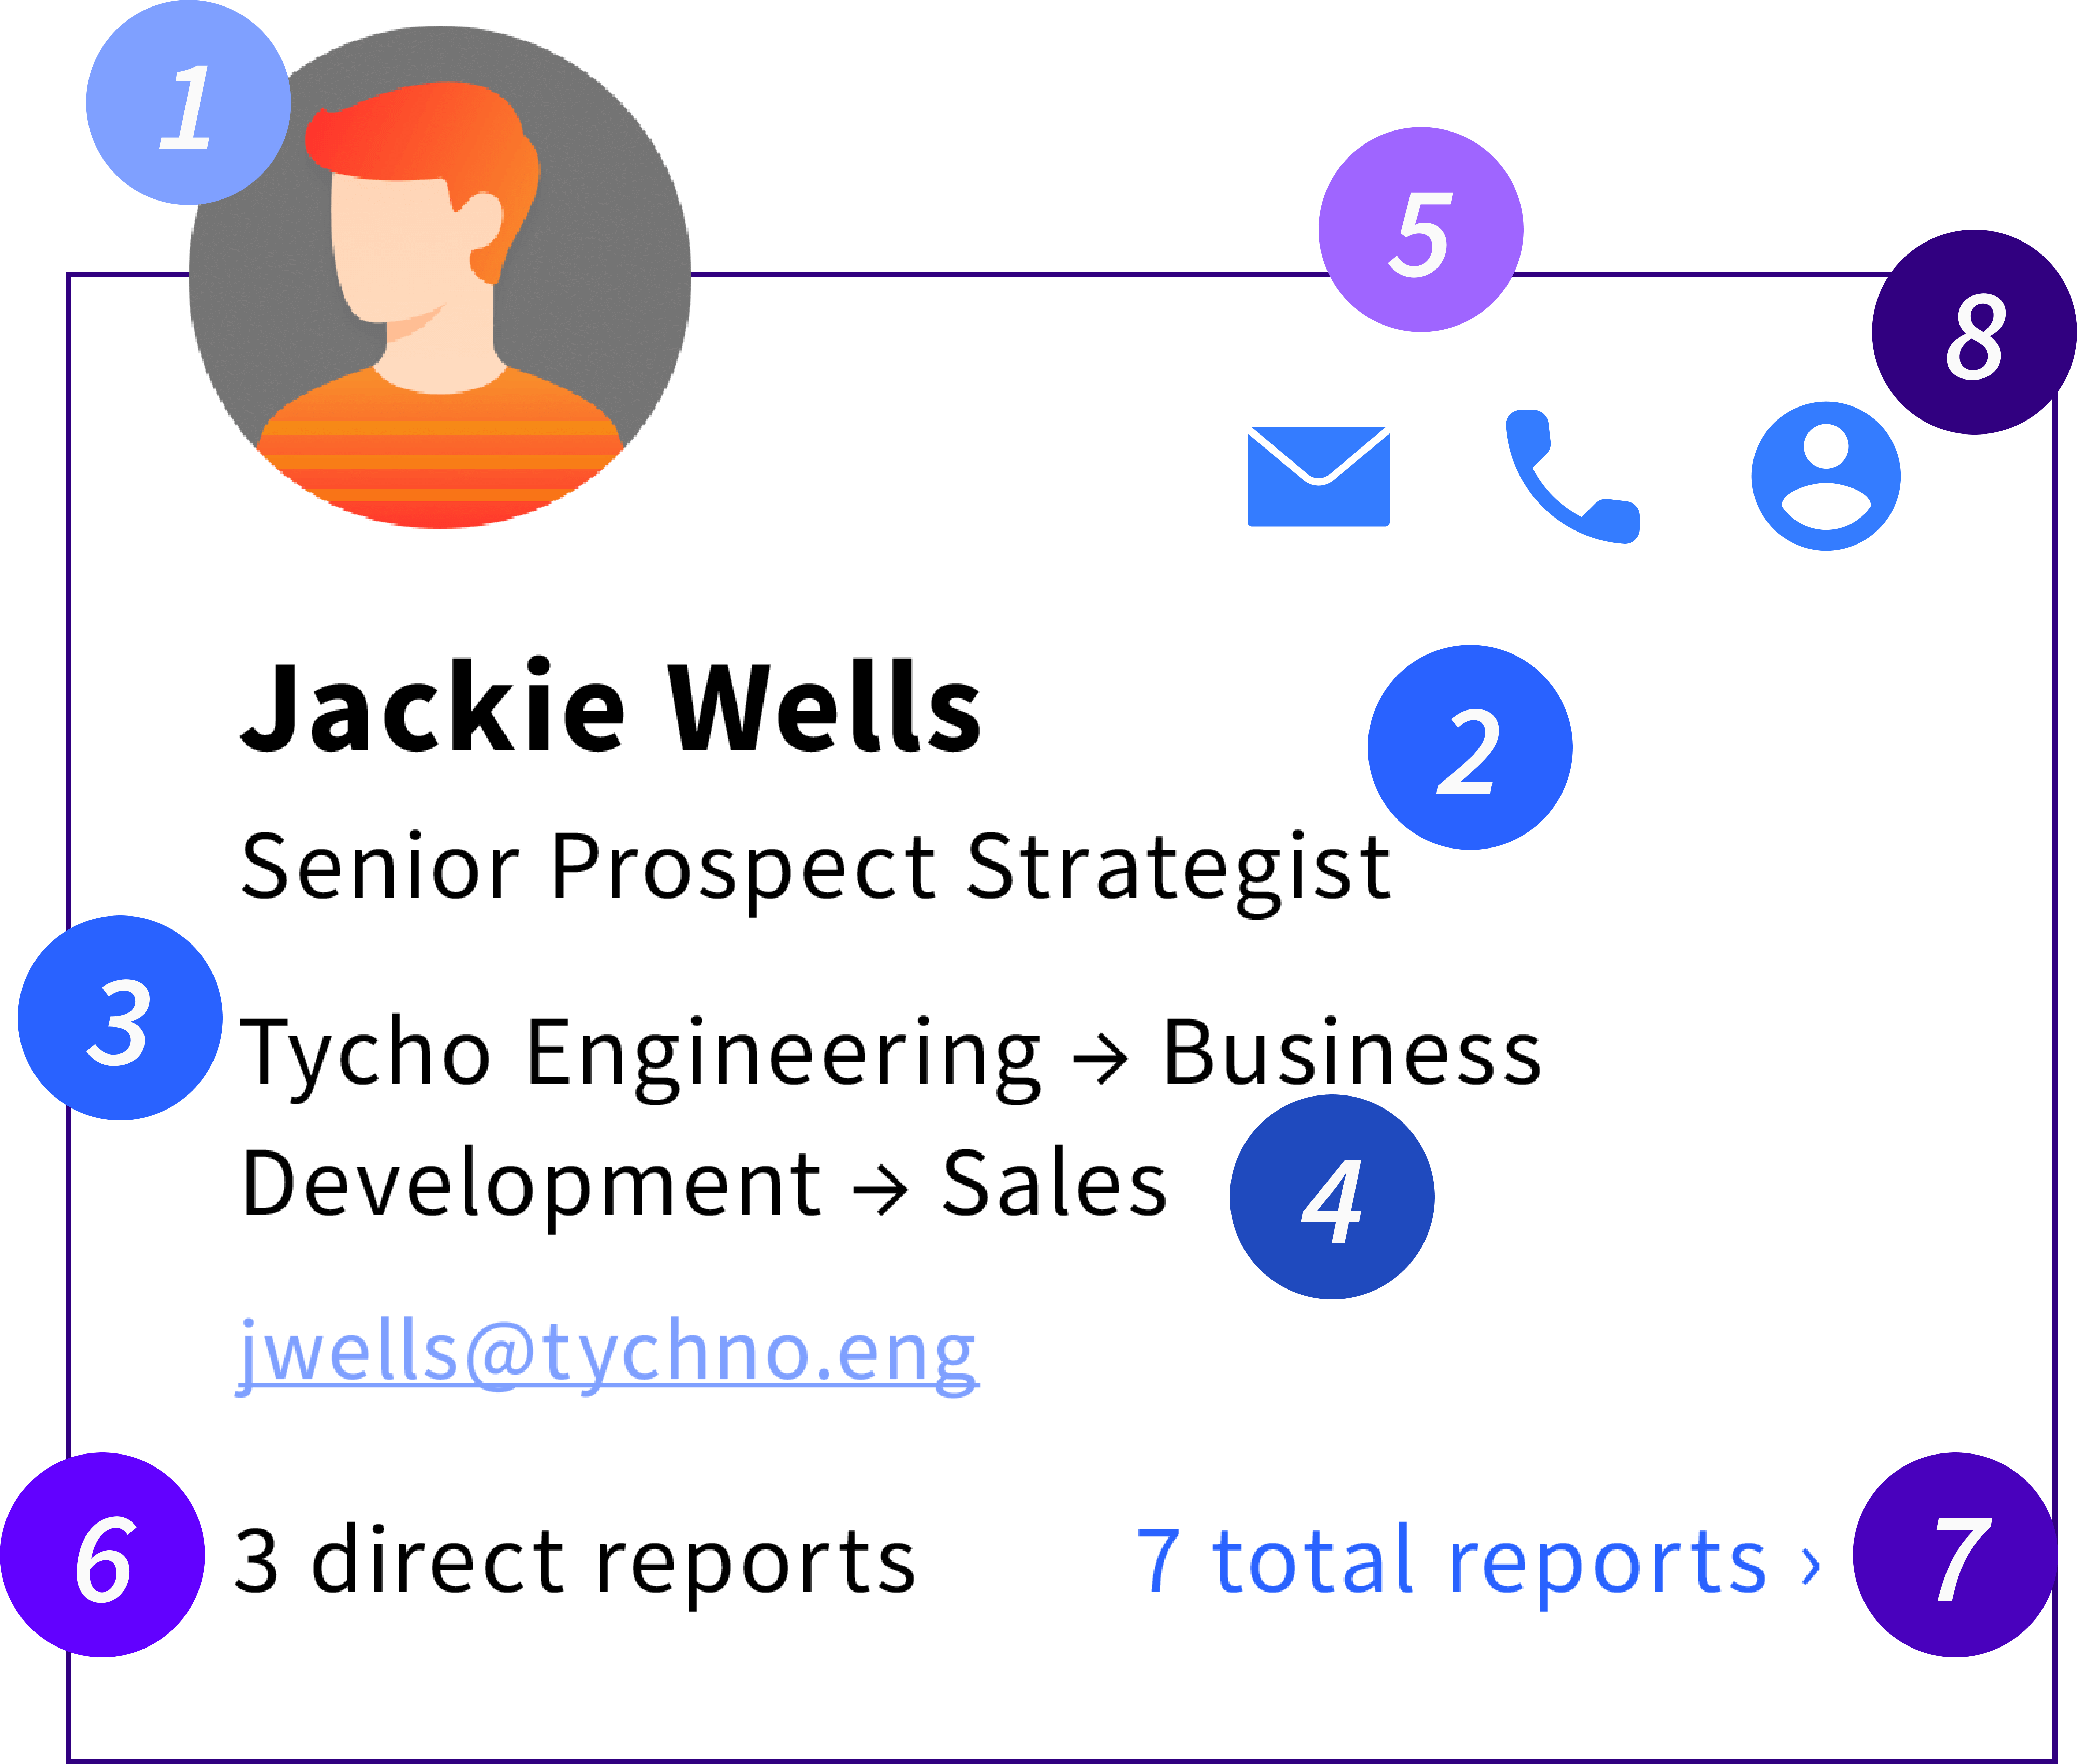 A profile card on an org chart featuring an employee